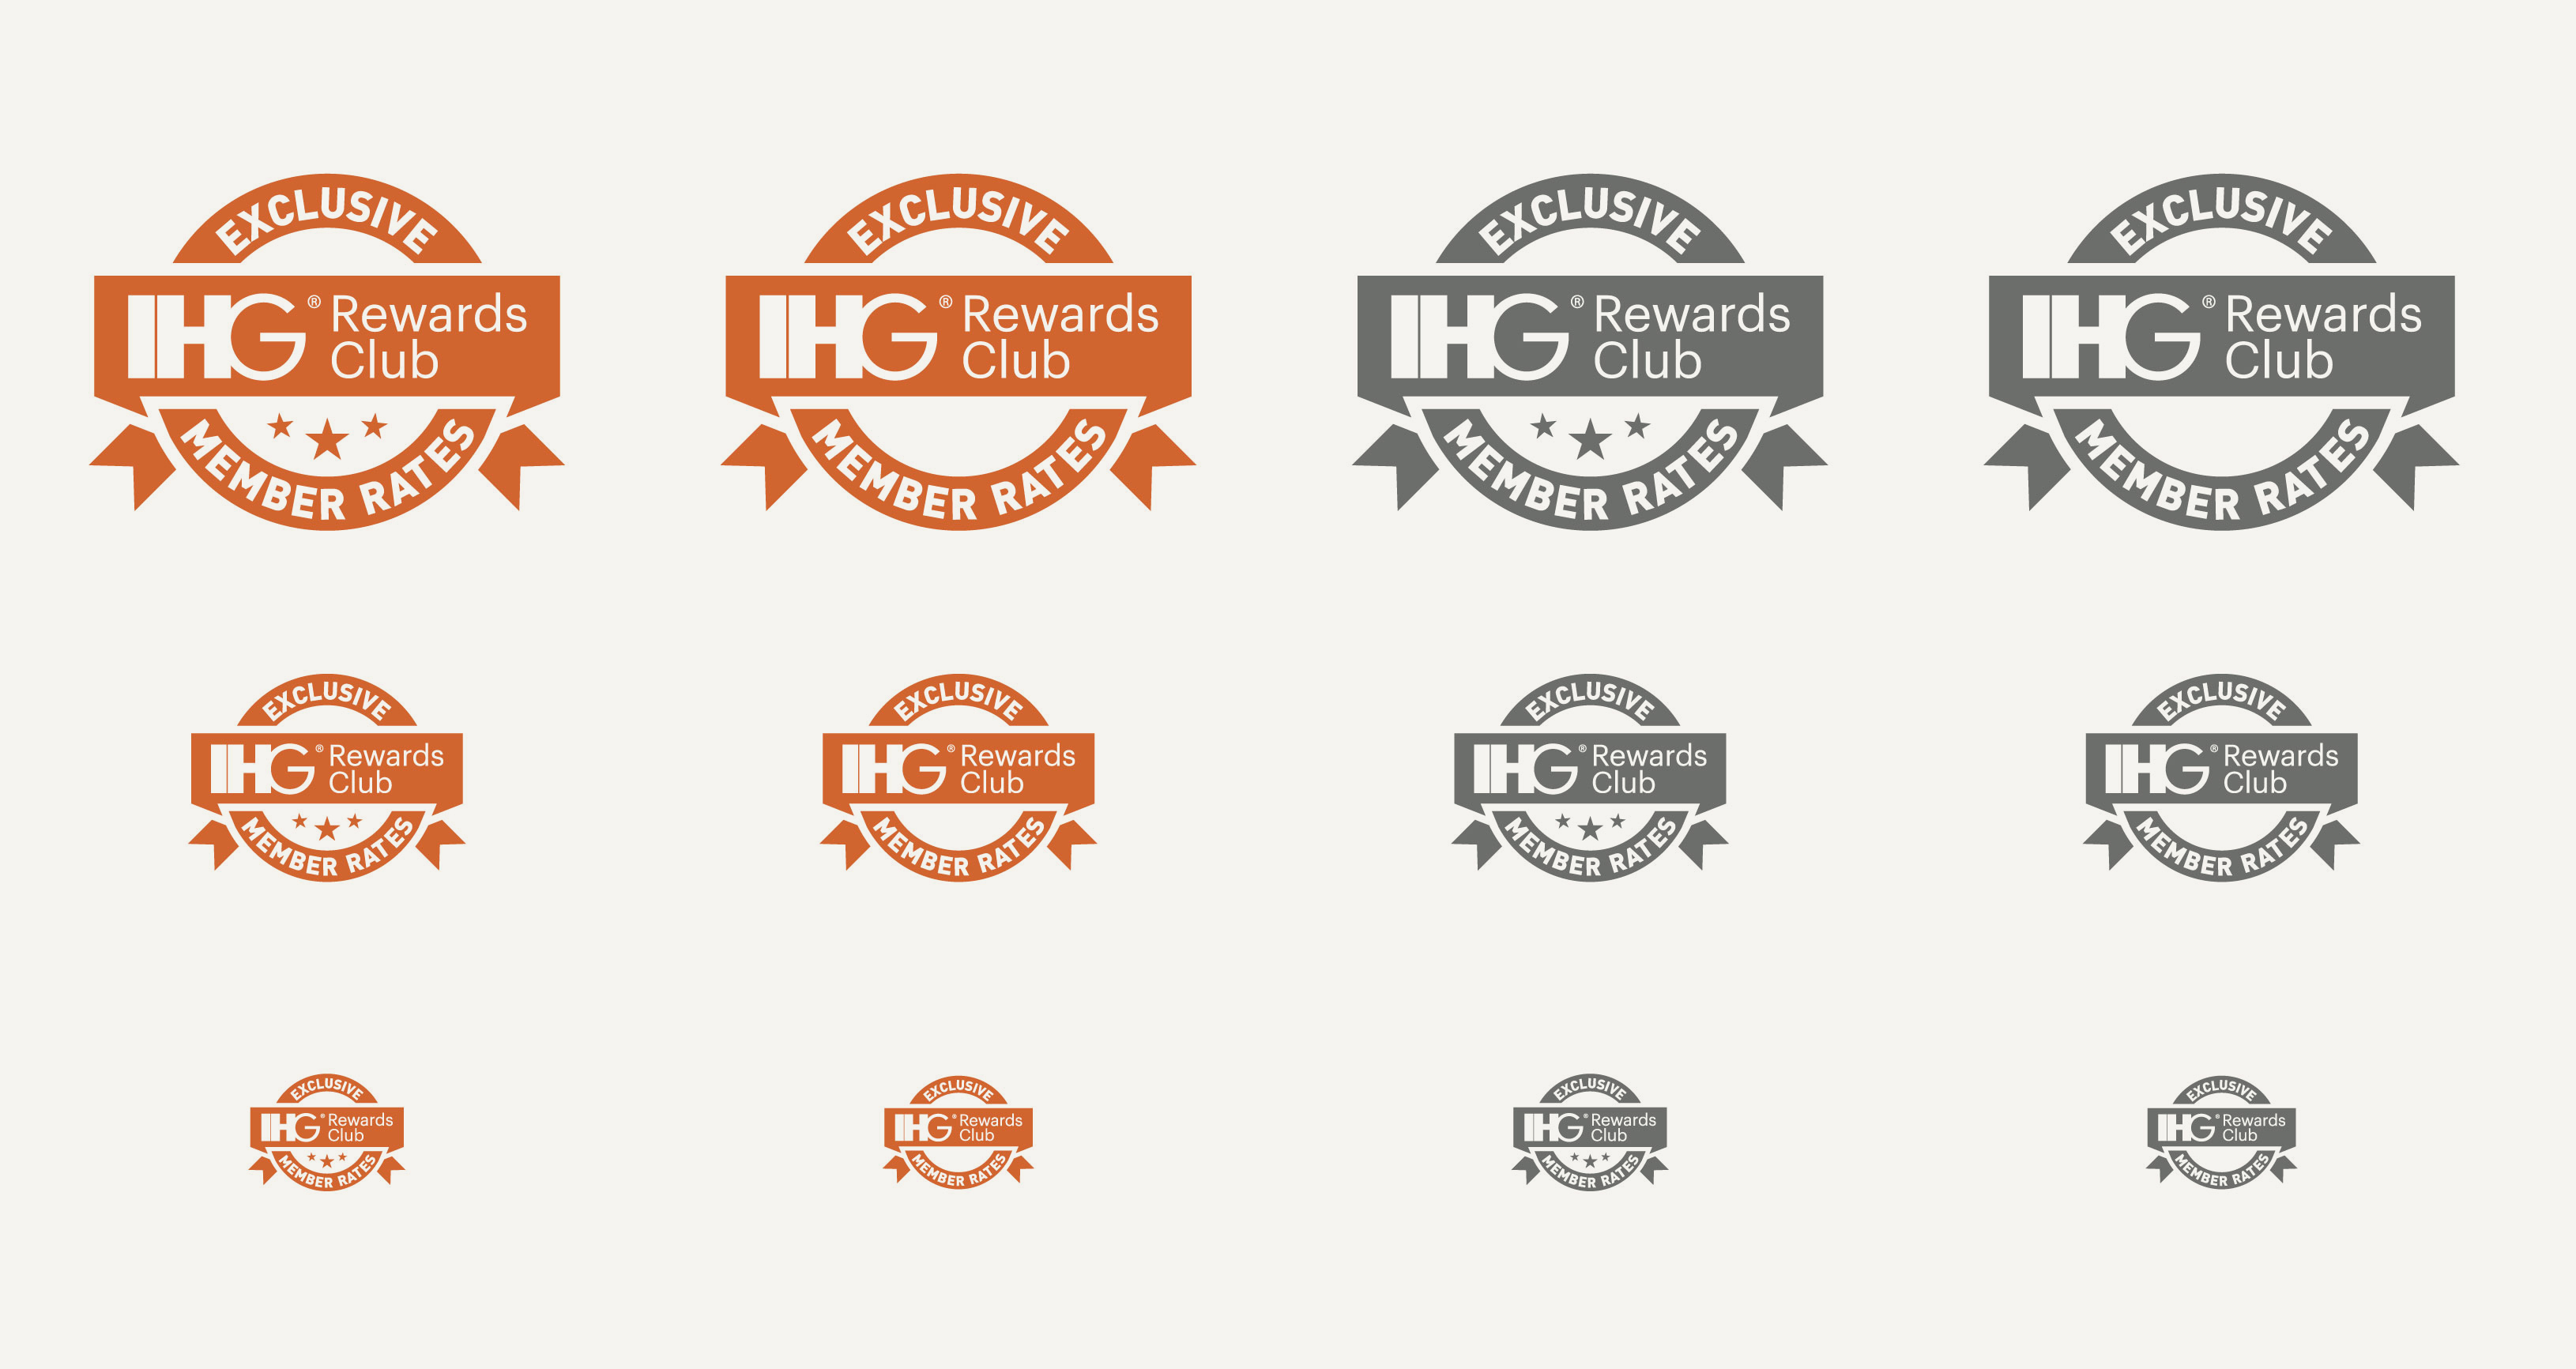 """Initial iterations of the logo I made for """"Your Rate"""". Each of them are round badges, some with a ribbon on it that says """"IHG Rewards Club"""" on it, while otehrs have stars. Some are orange, and others are grey."""